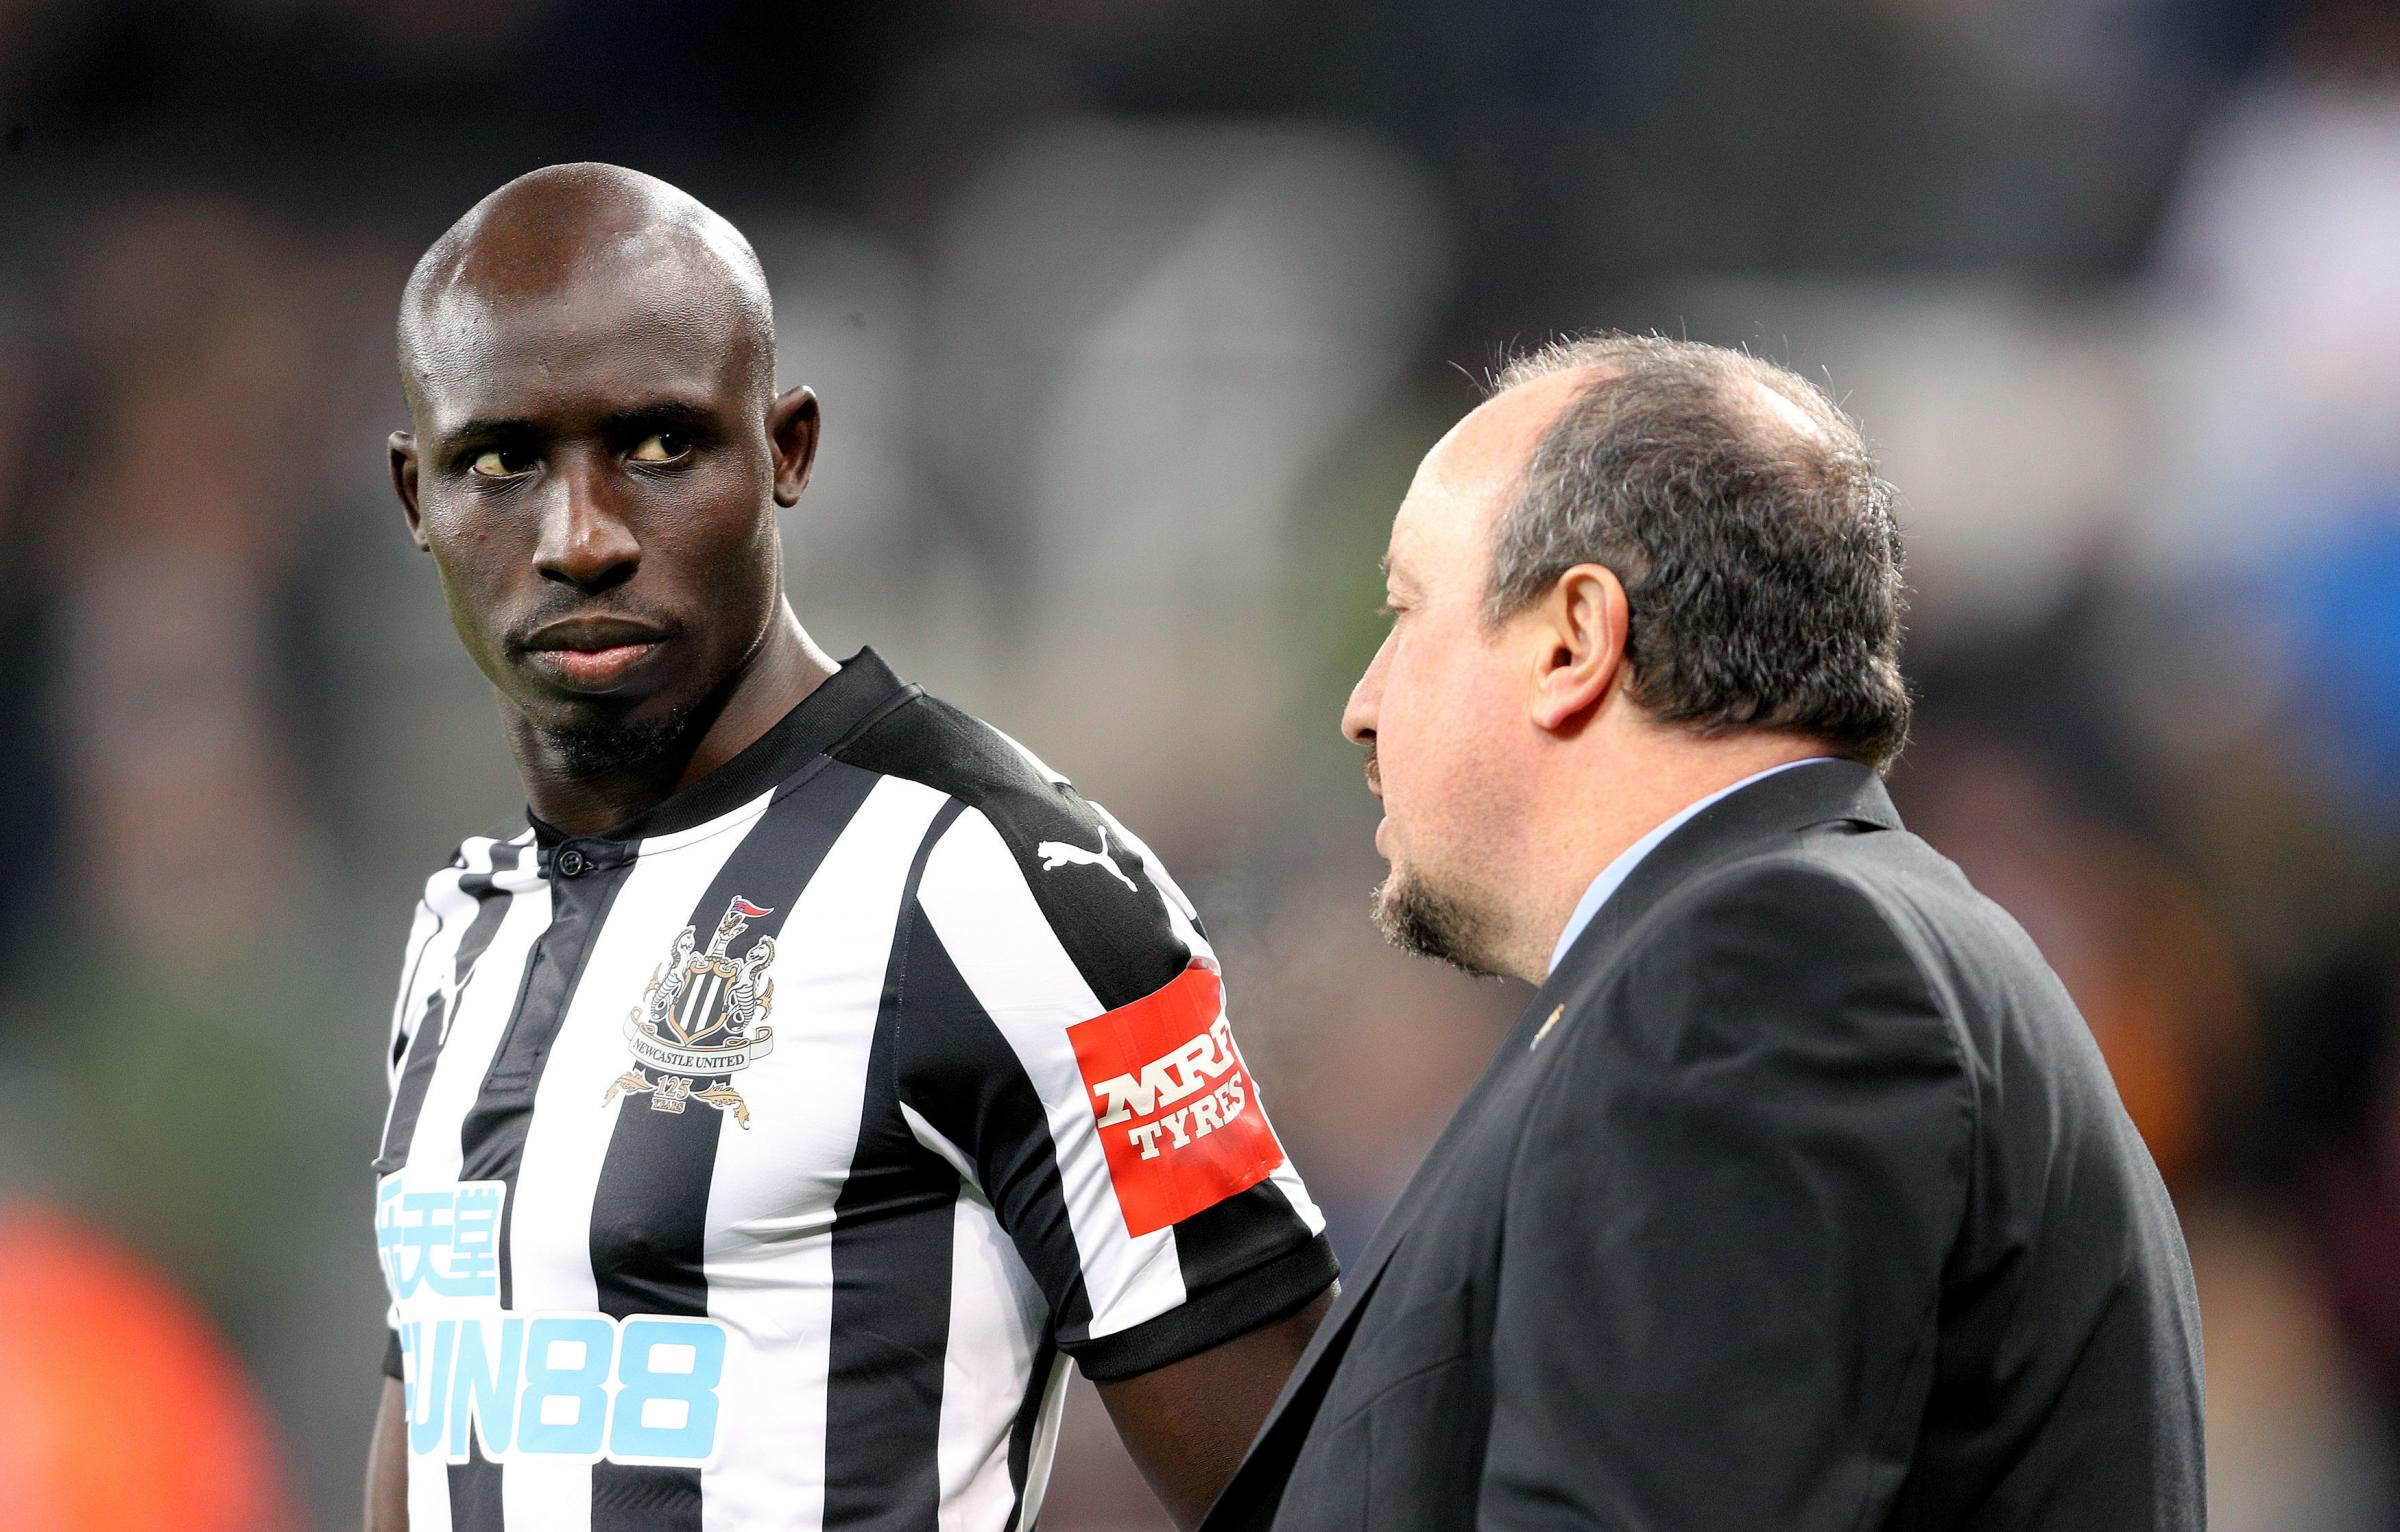 FIT: Newcastle United's Mo Diame (left) is fit to play for manager Rafael Benitez tomorrow against Manchester United